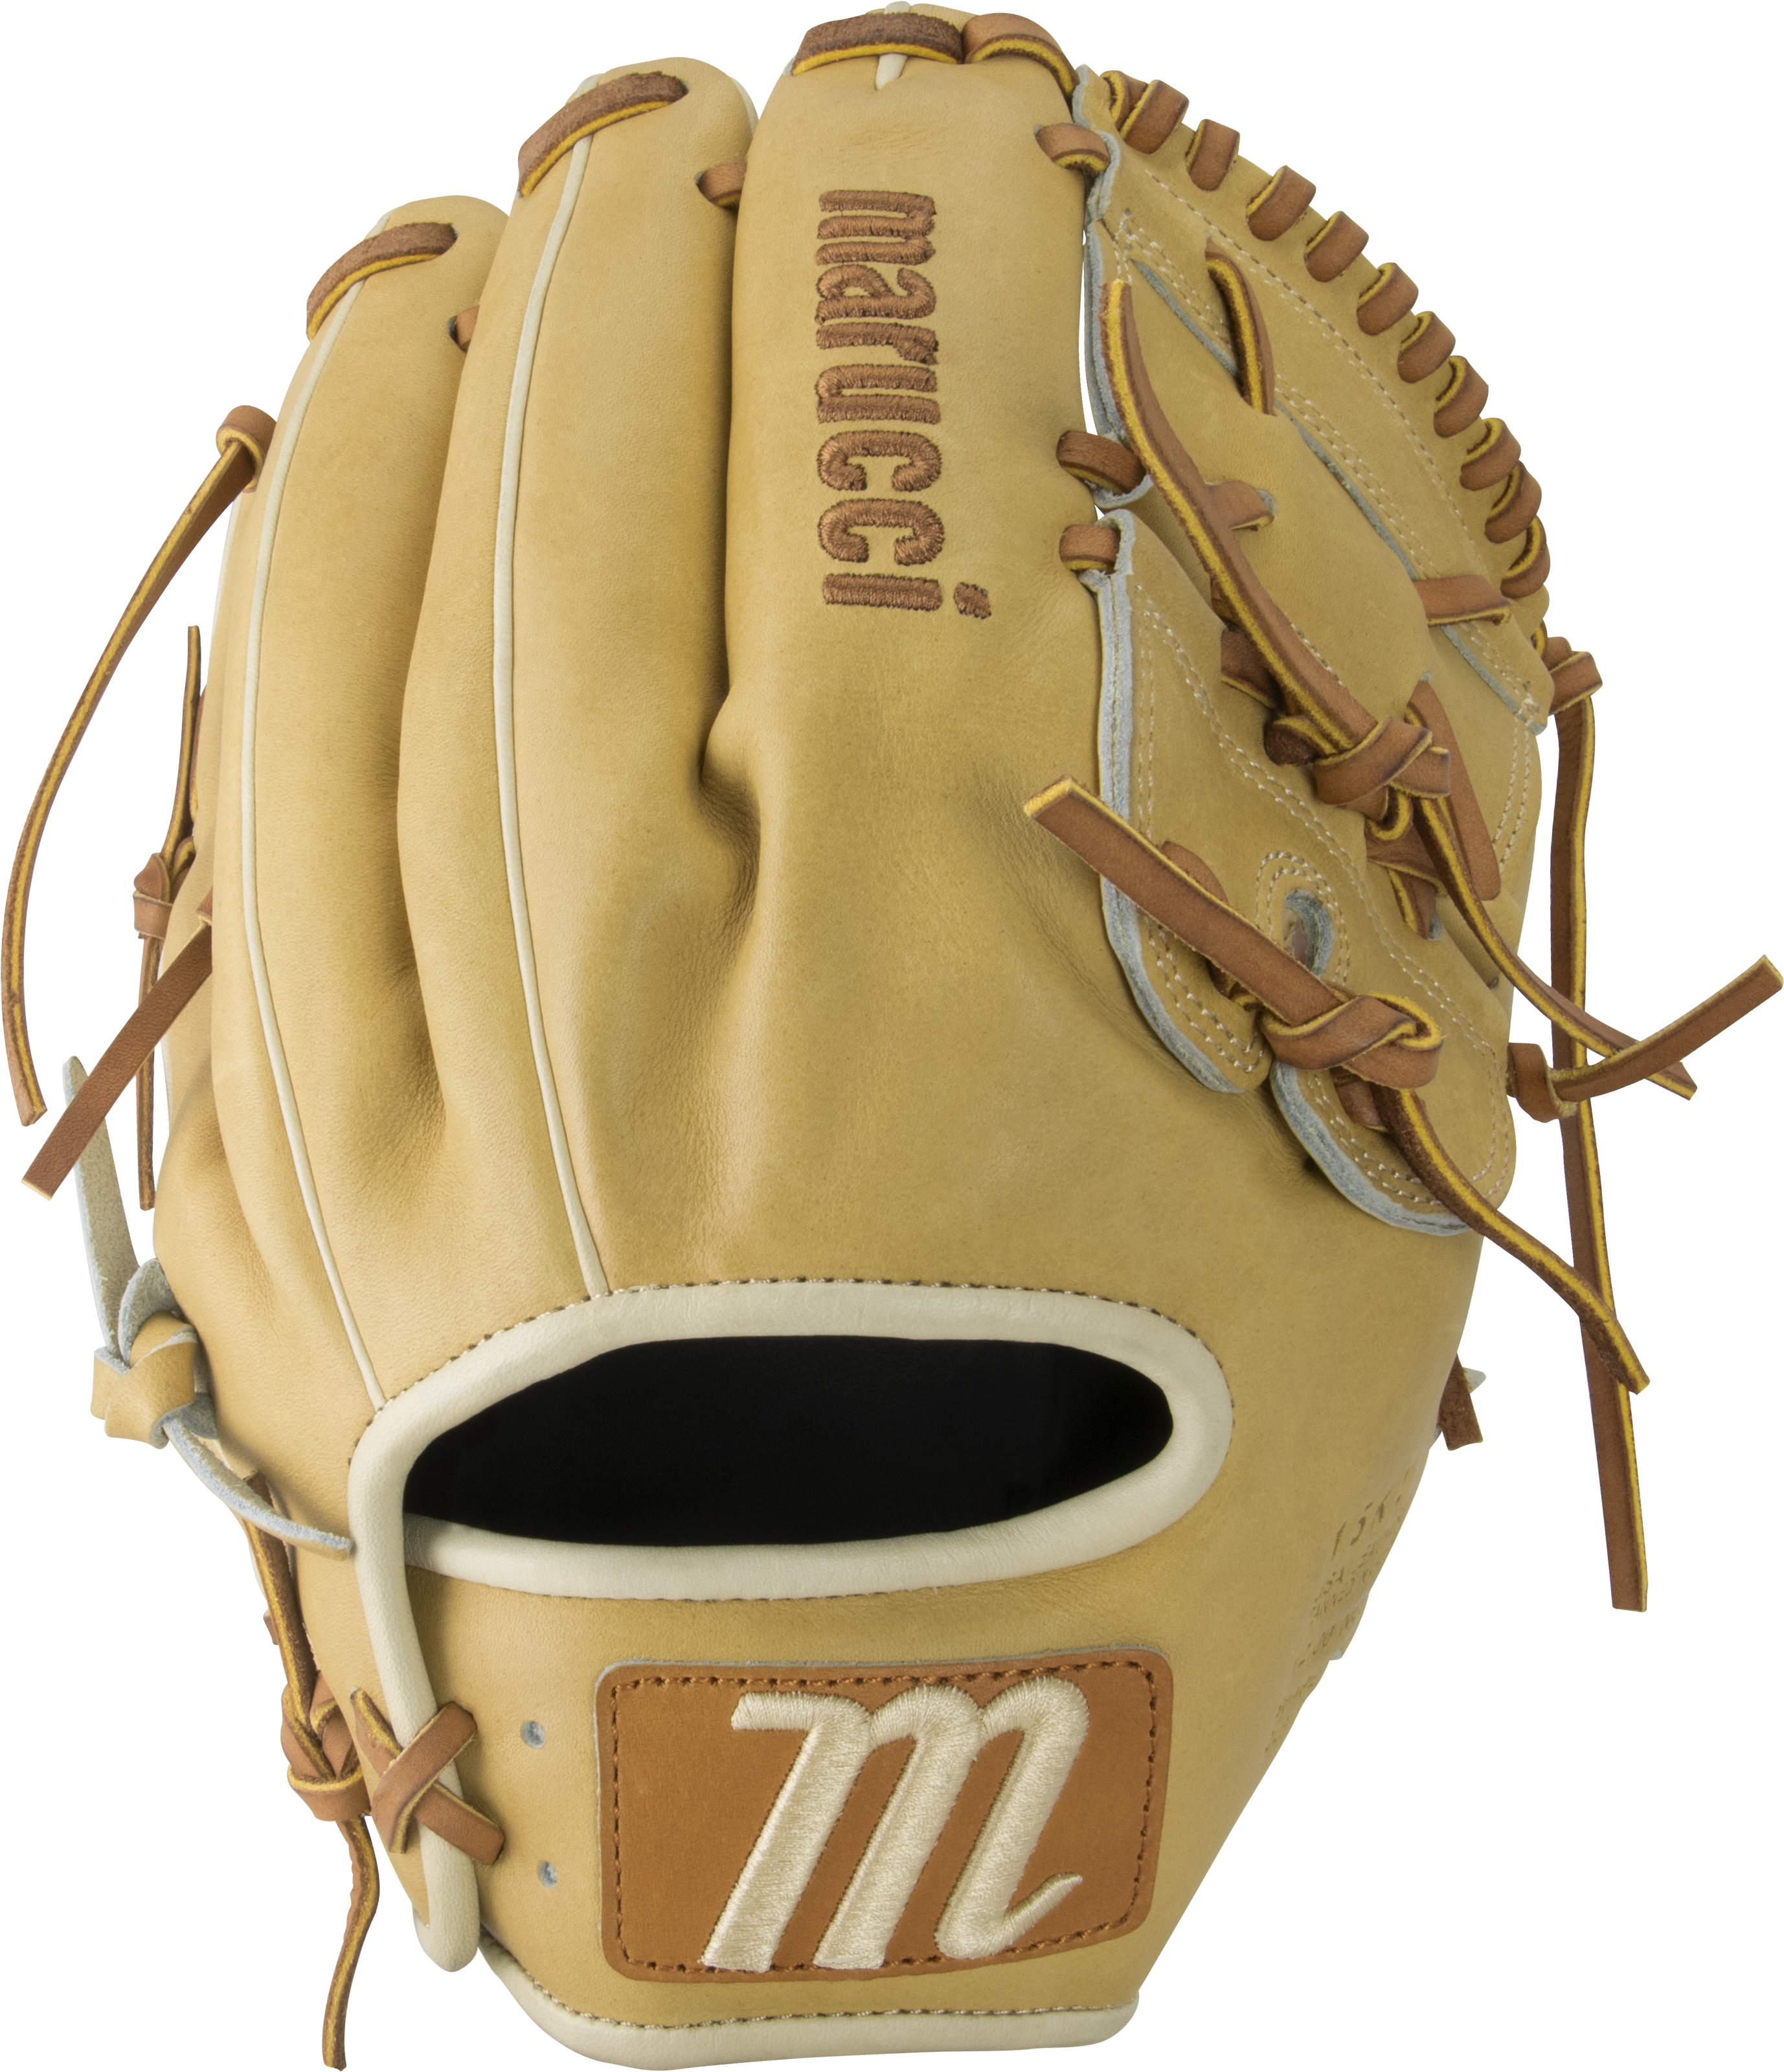 marucci-cypress-12-baseball-glove-15k2-one-piece-web-right-hand-throw MFGCY15K2-SMTF-RightHandThrow Marucci  849817099391 • Premium Japanese-tanned steerhide leather provides stiffness and rugged durability •